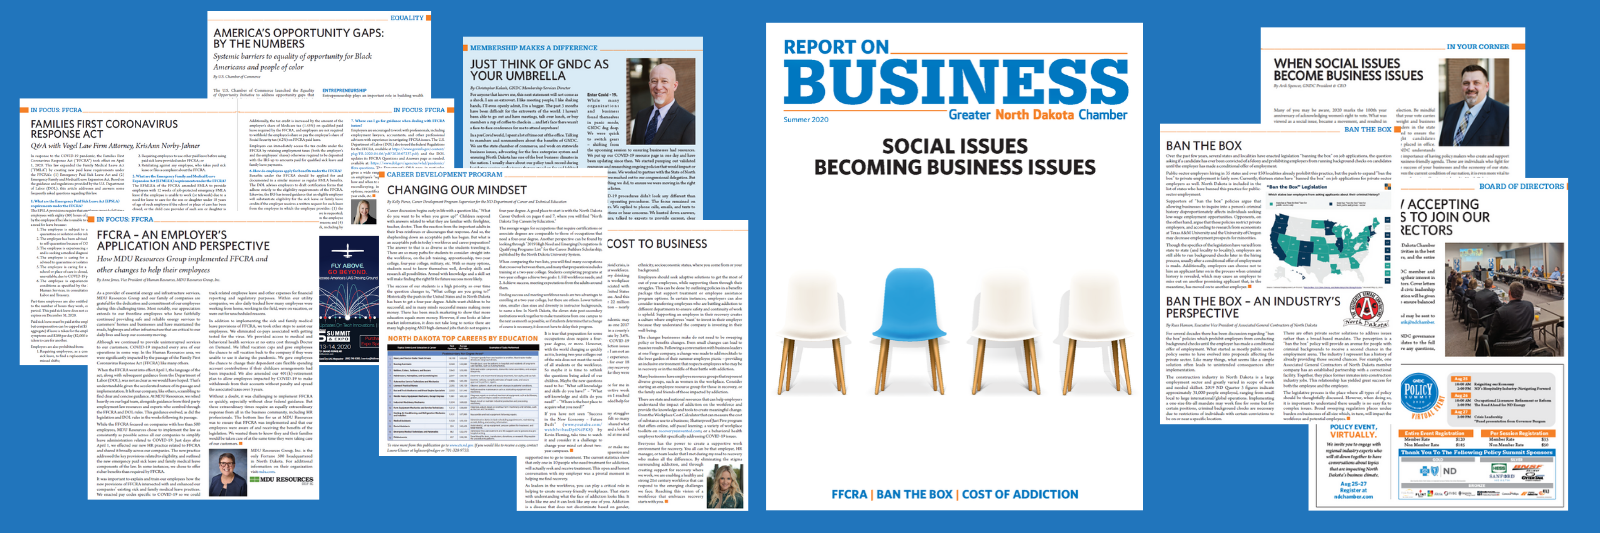 Copy-of-Report-on-Business-(1).png